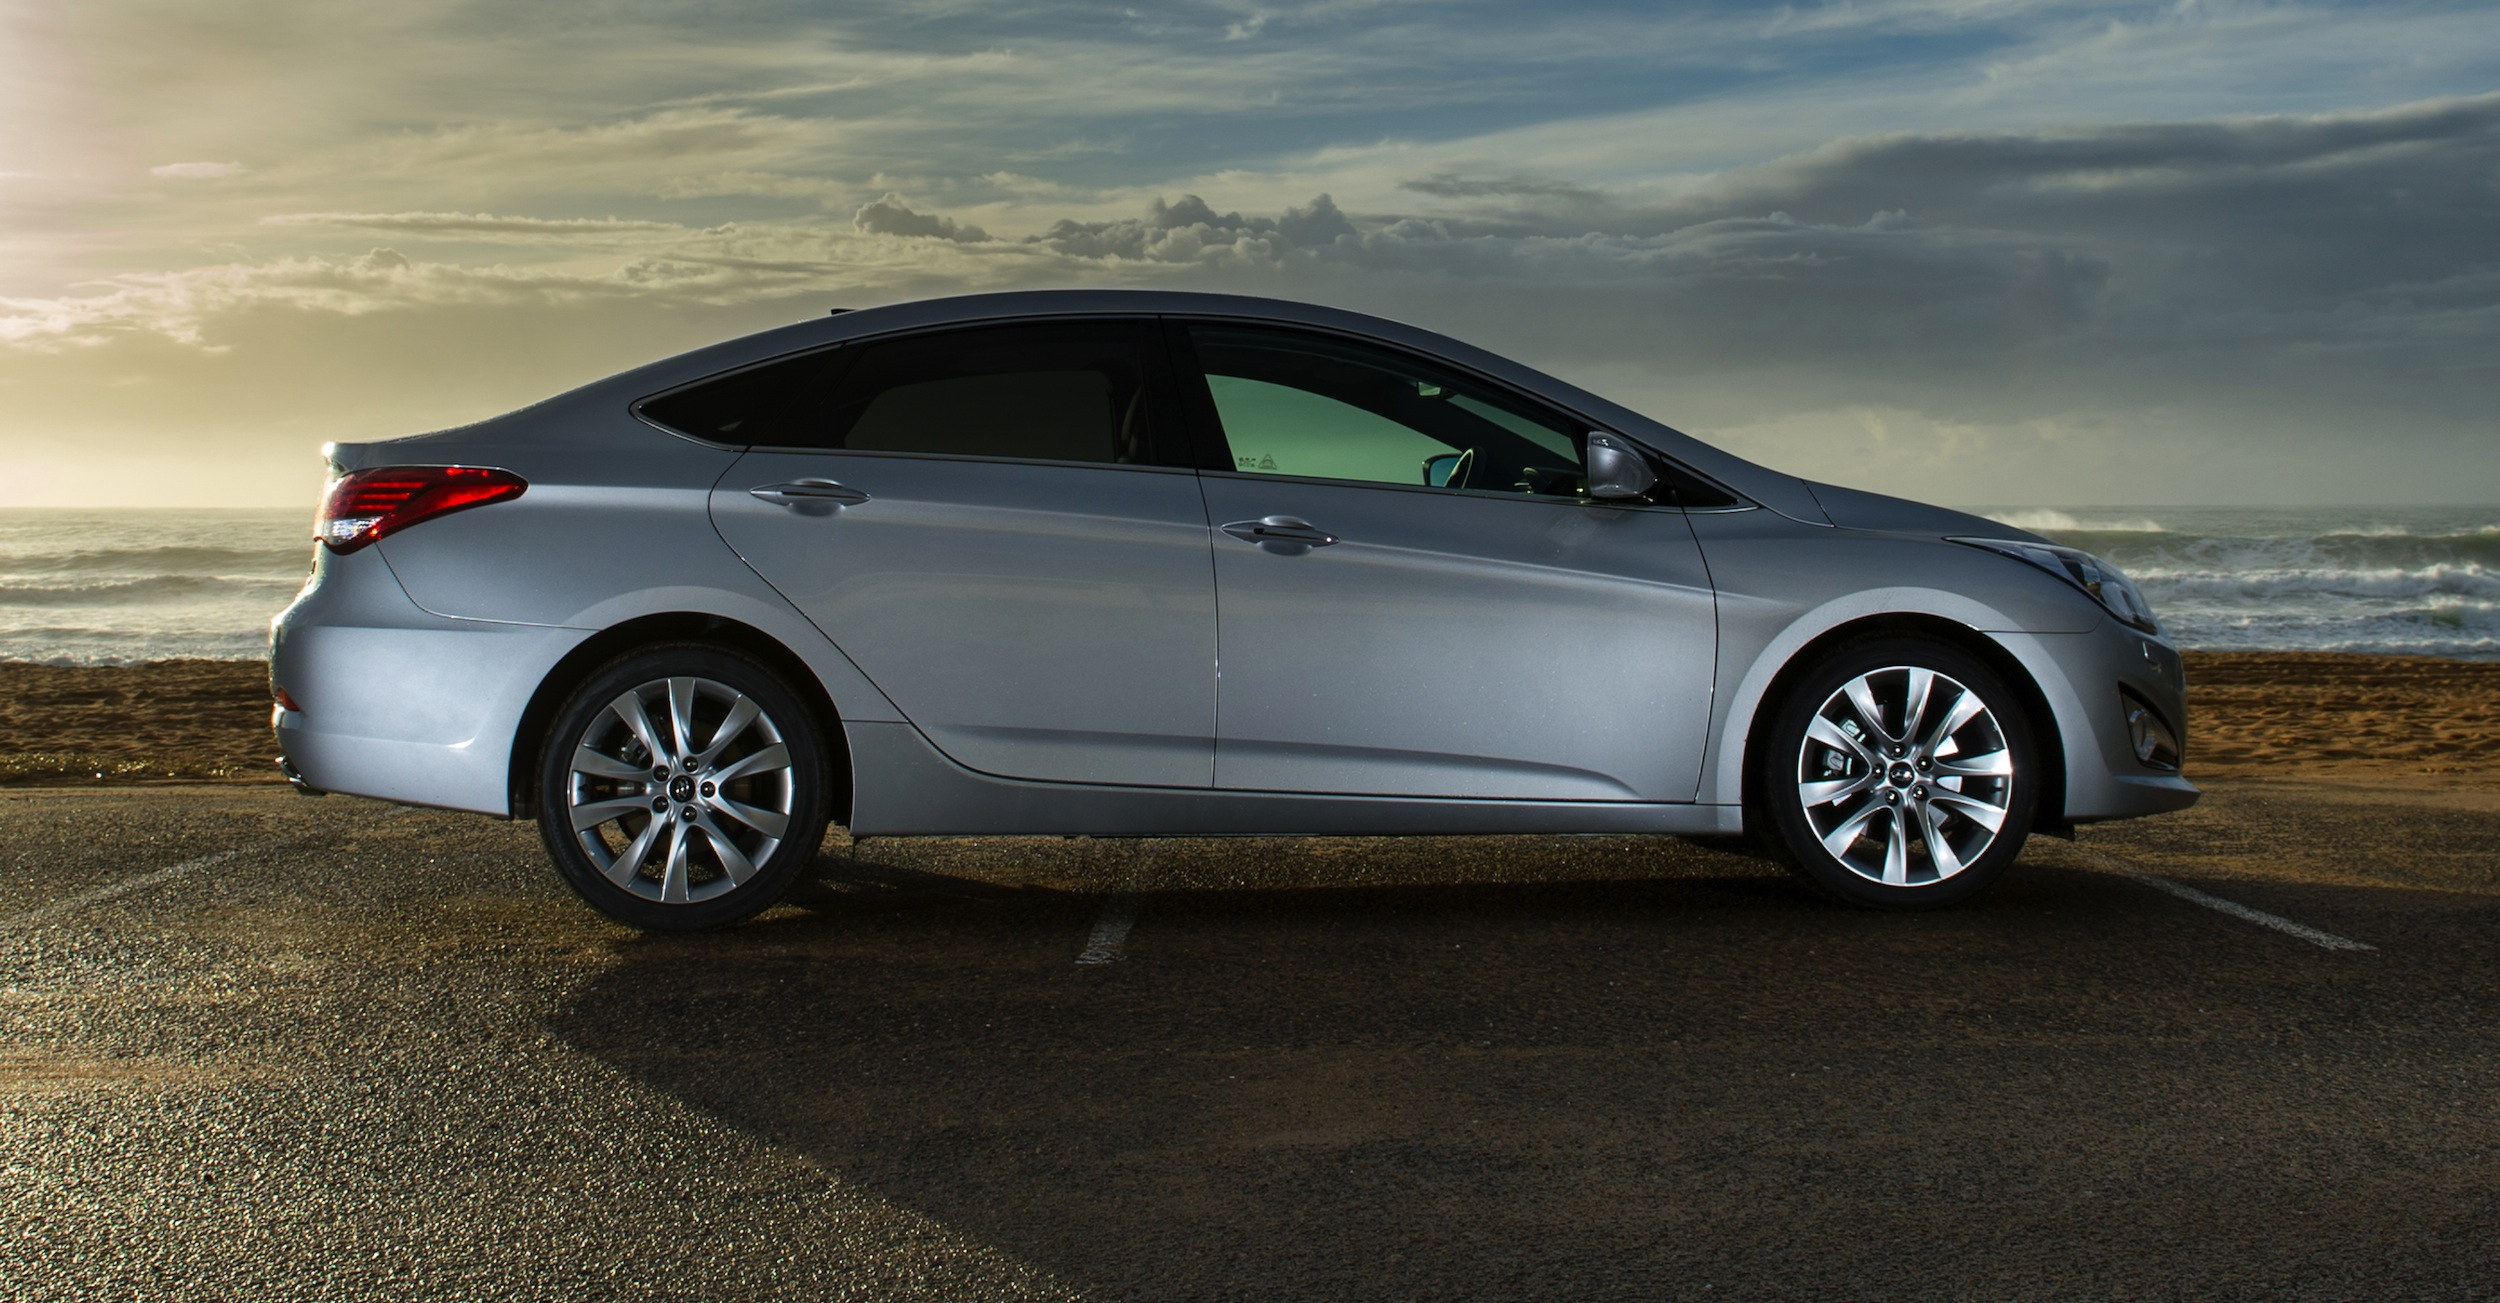 Hyundai i40 Review - photos | CarAdvice